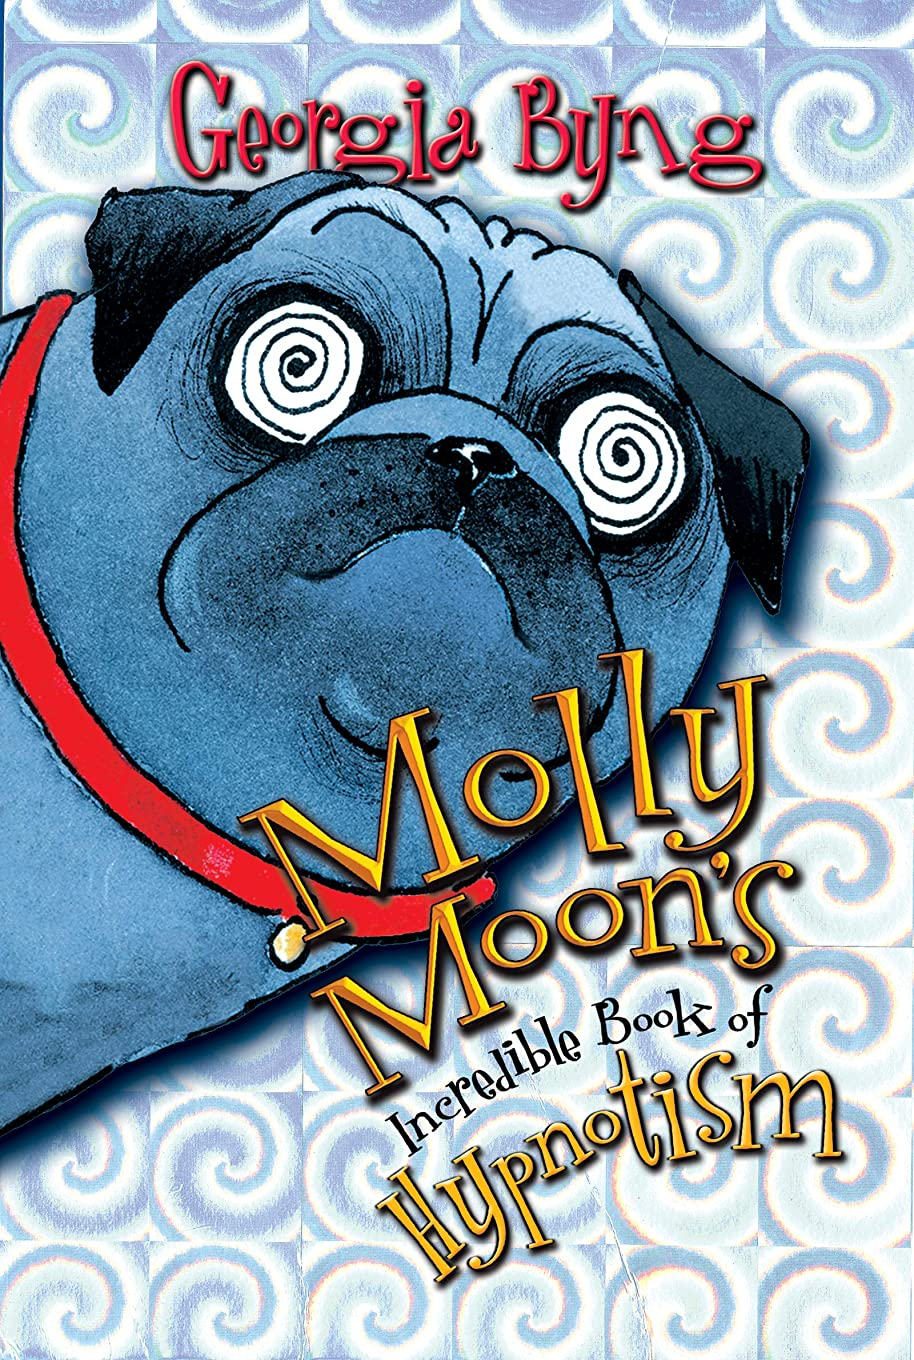 囲むアデレードドキュメンタリーMolly Moon's Incredible Book of Hypnotism (English Edition)